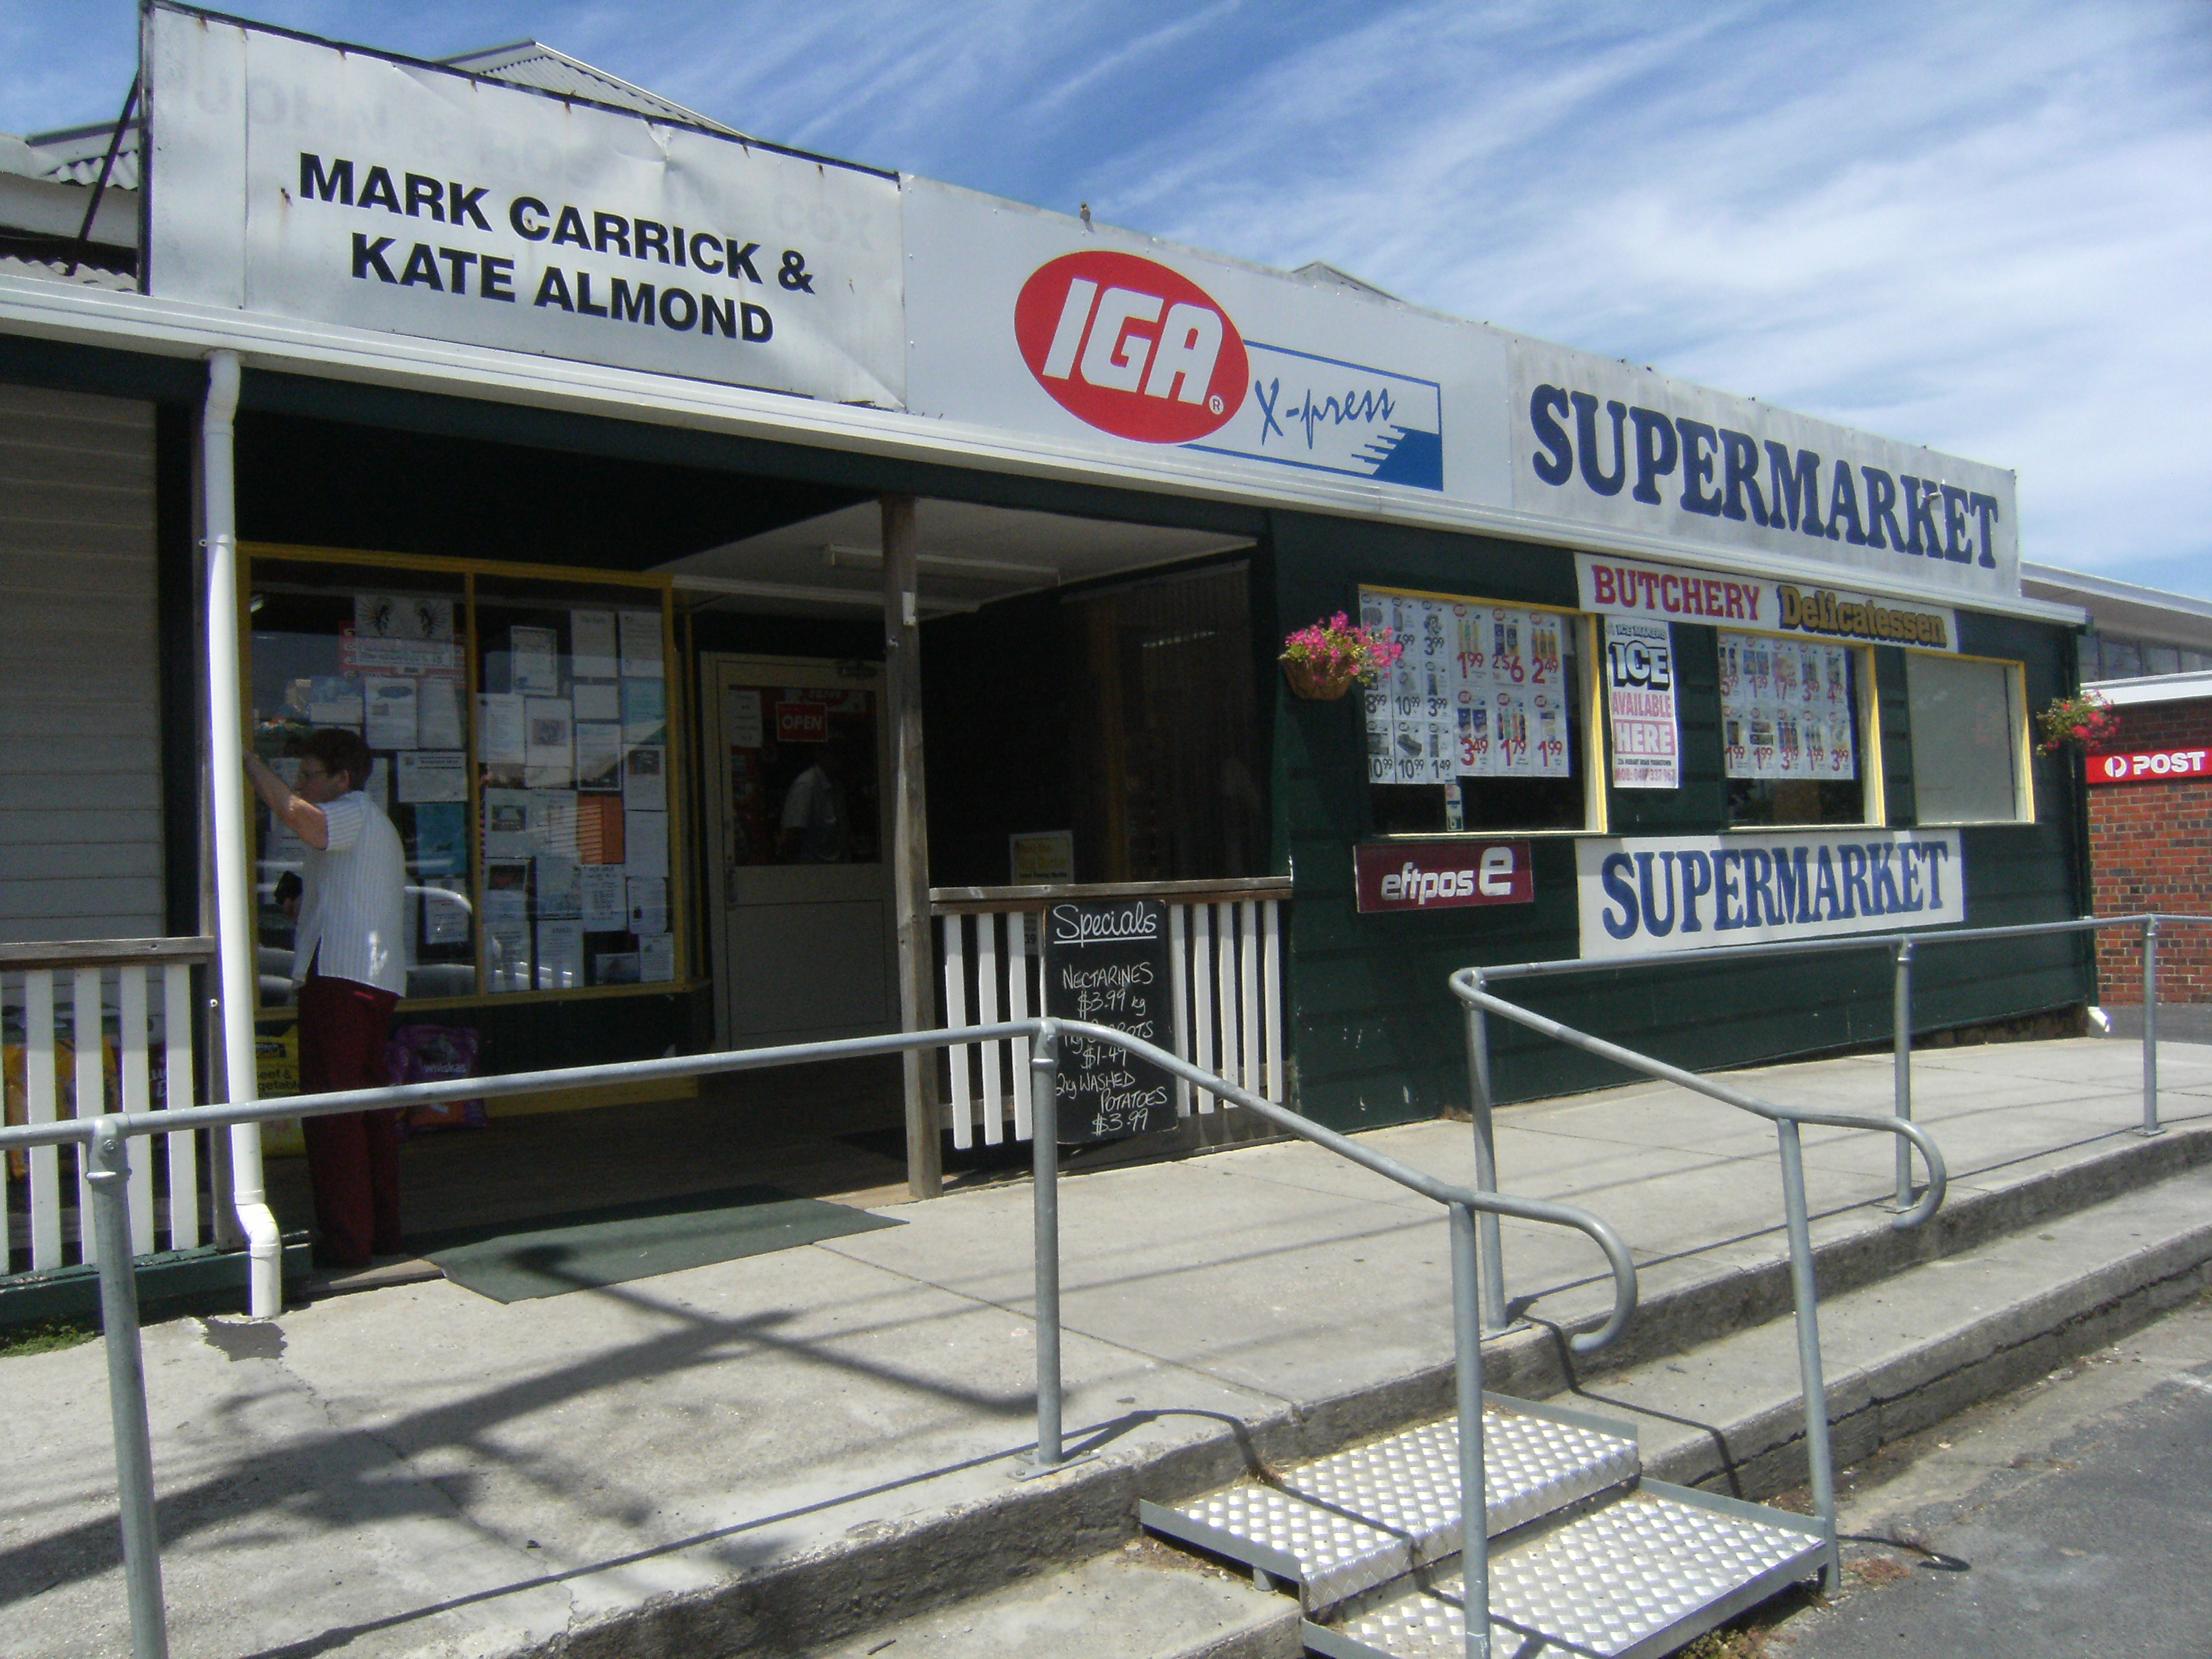 St Marys Supermarket 1